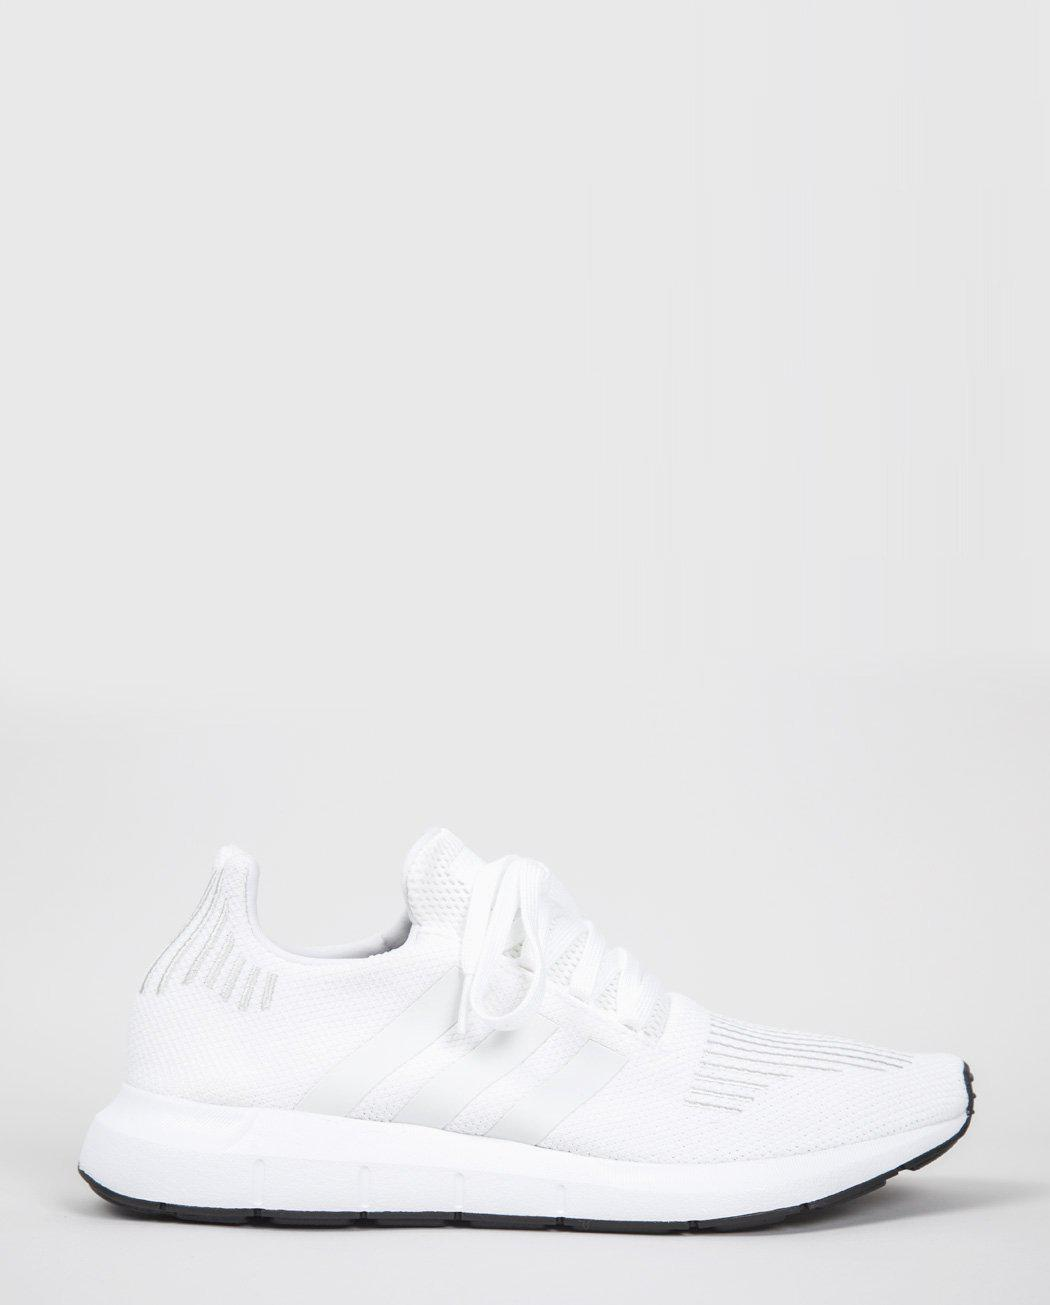 d3f08236a Lyst - adidas Originals Adidas Swift Run (cg4112) in White for Men